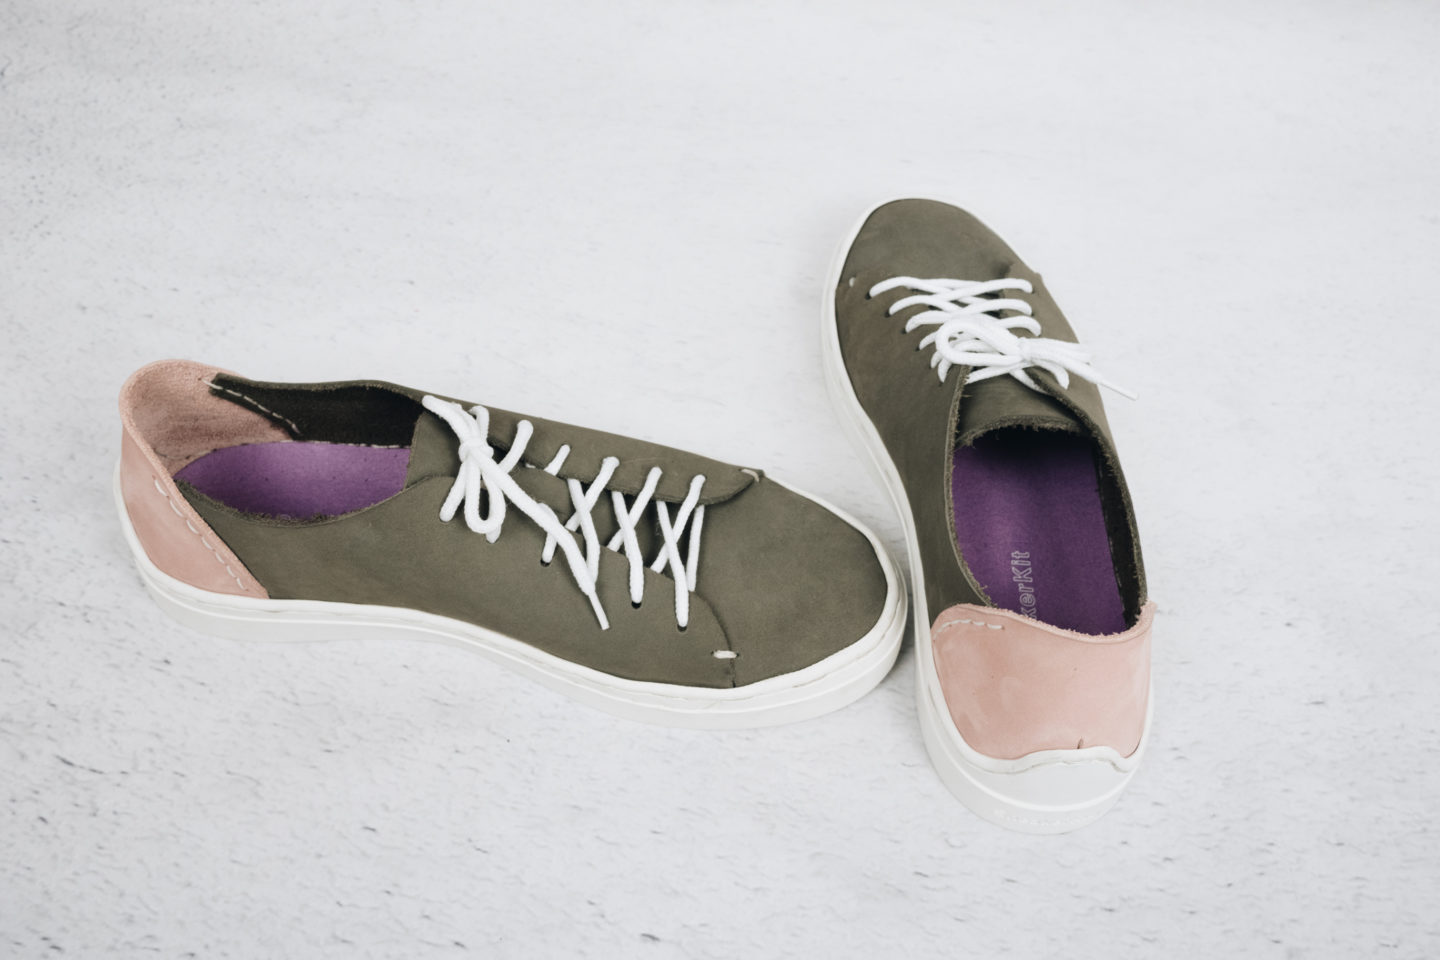 DIY GREY AND PINK LEATHER TRAINERS | SNEAKER KIT NEW SOLE